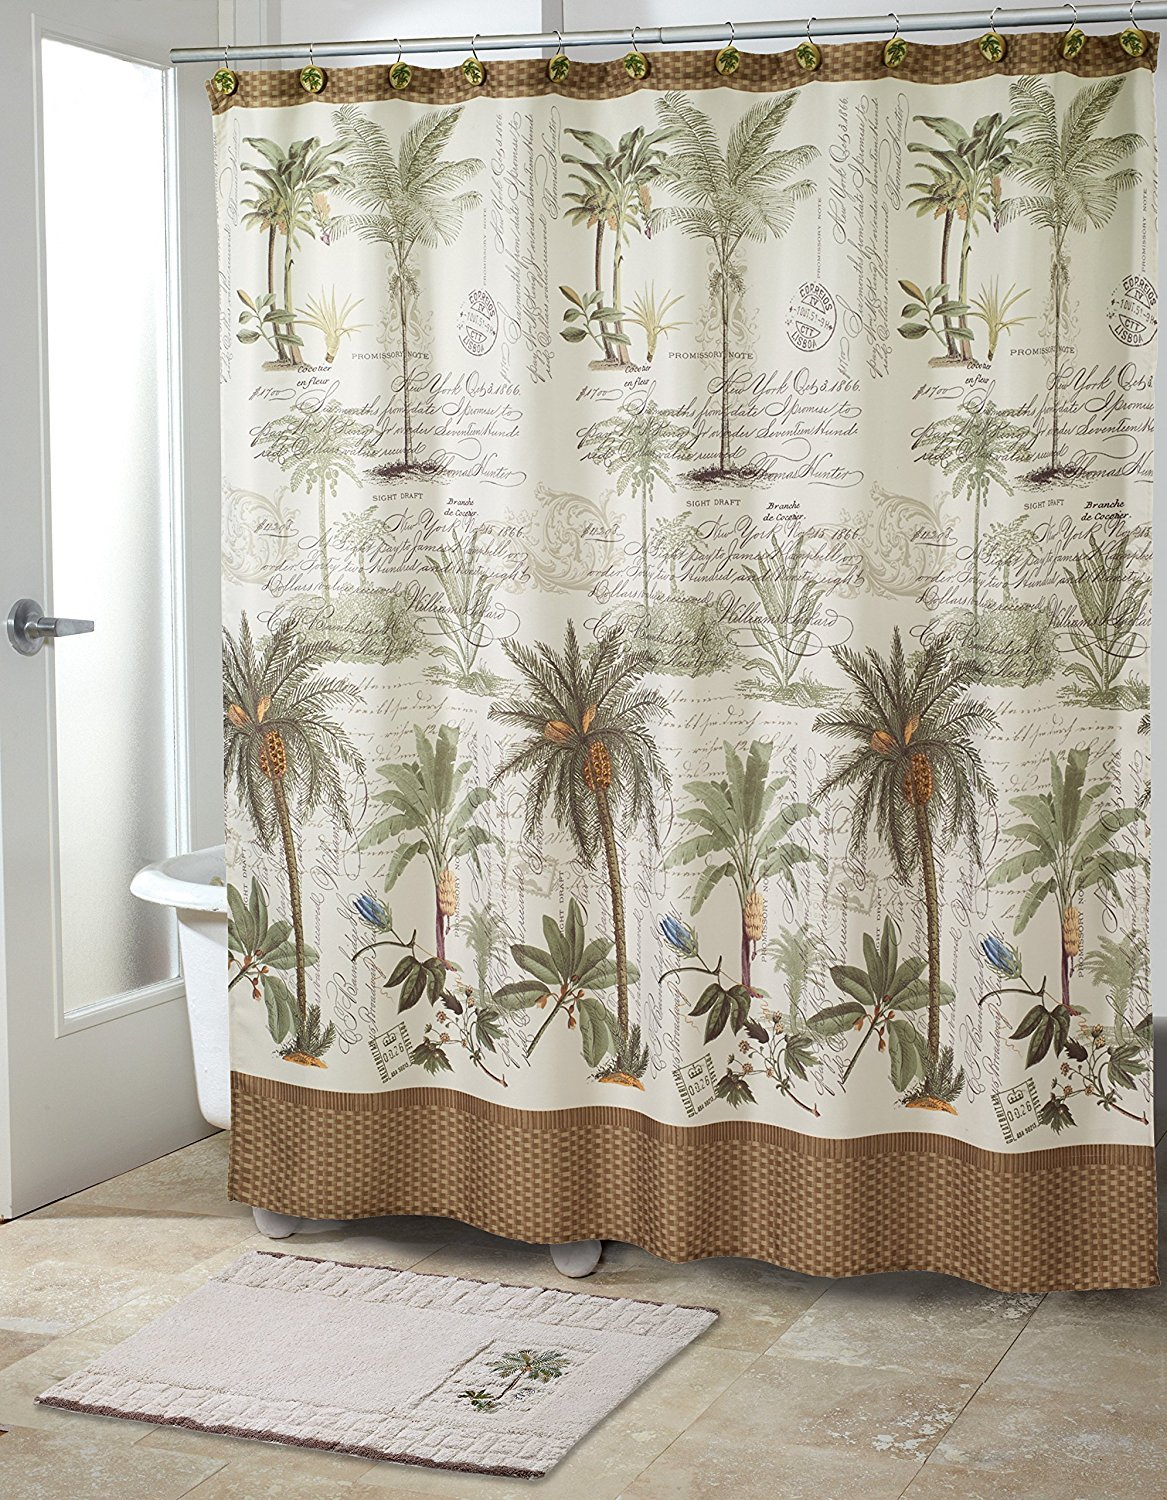 "Avanti Linens Colony Palm72"" x 72"" Shower CurtainIvory, Green and Brown"